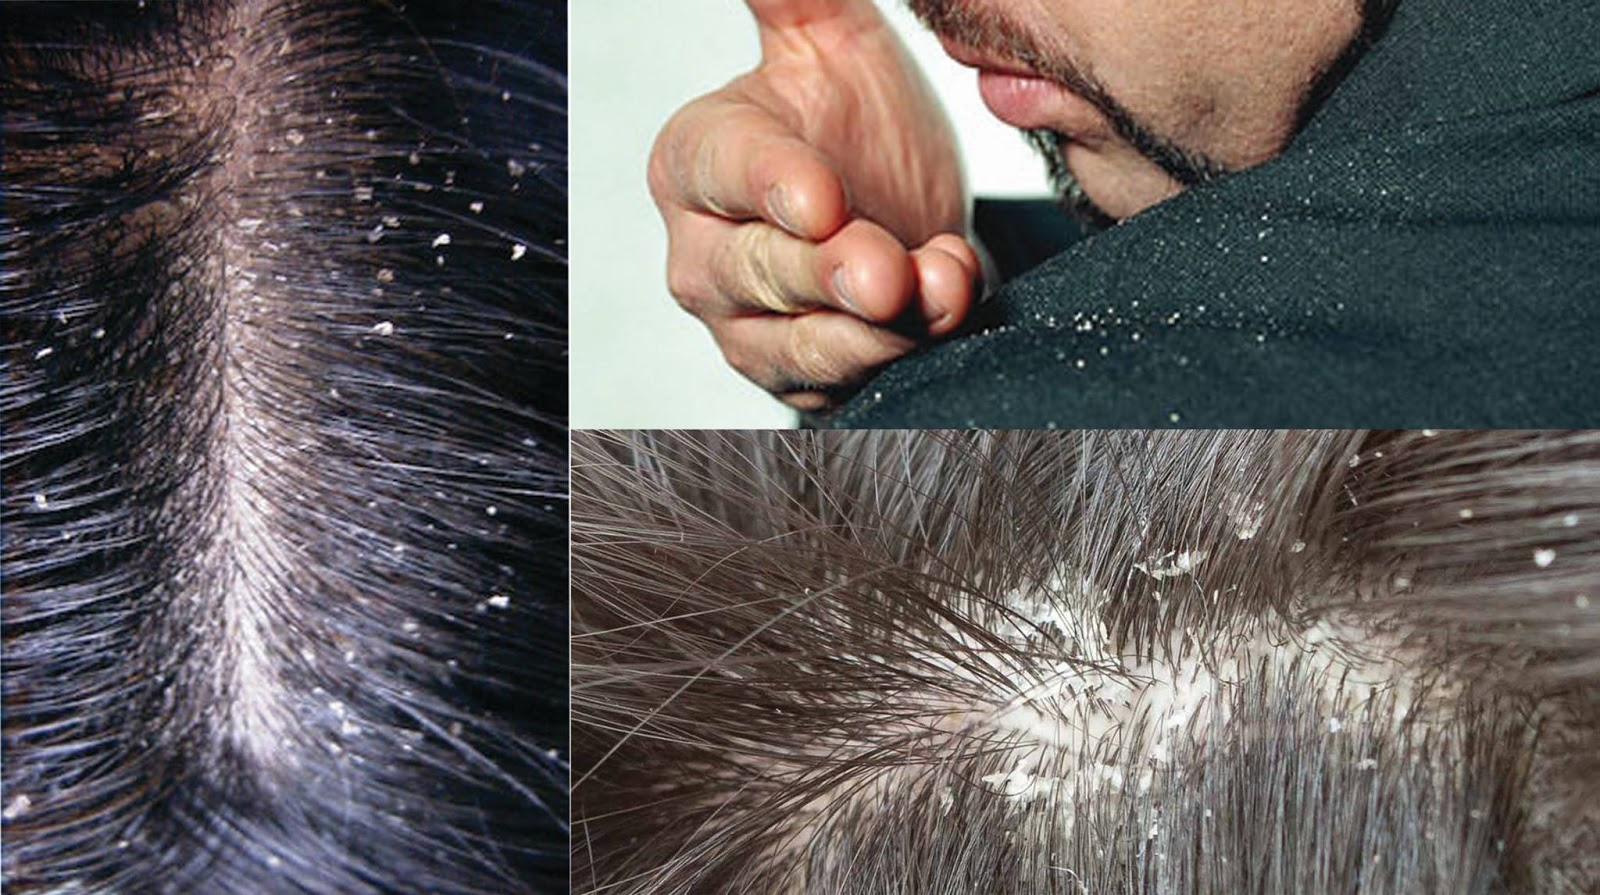 Scalp fungus. Scientists have found new ways to treat